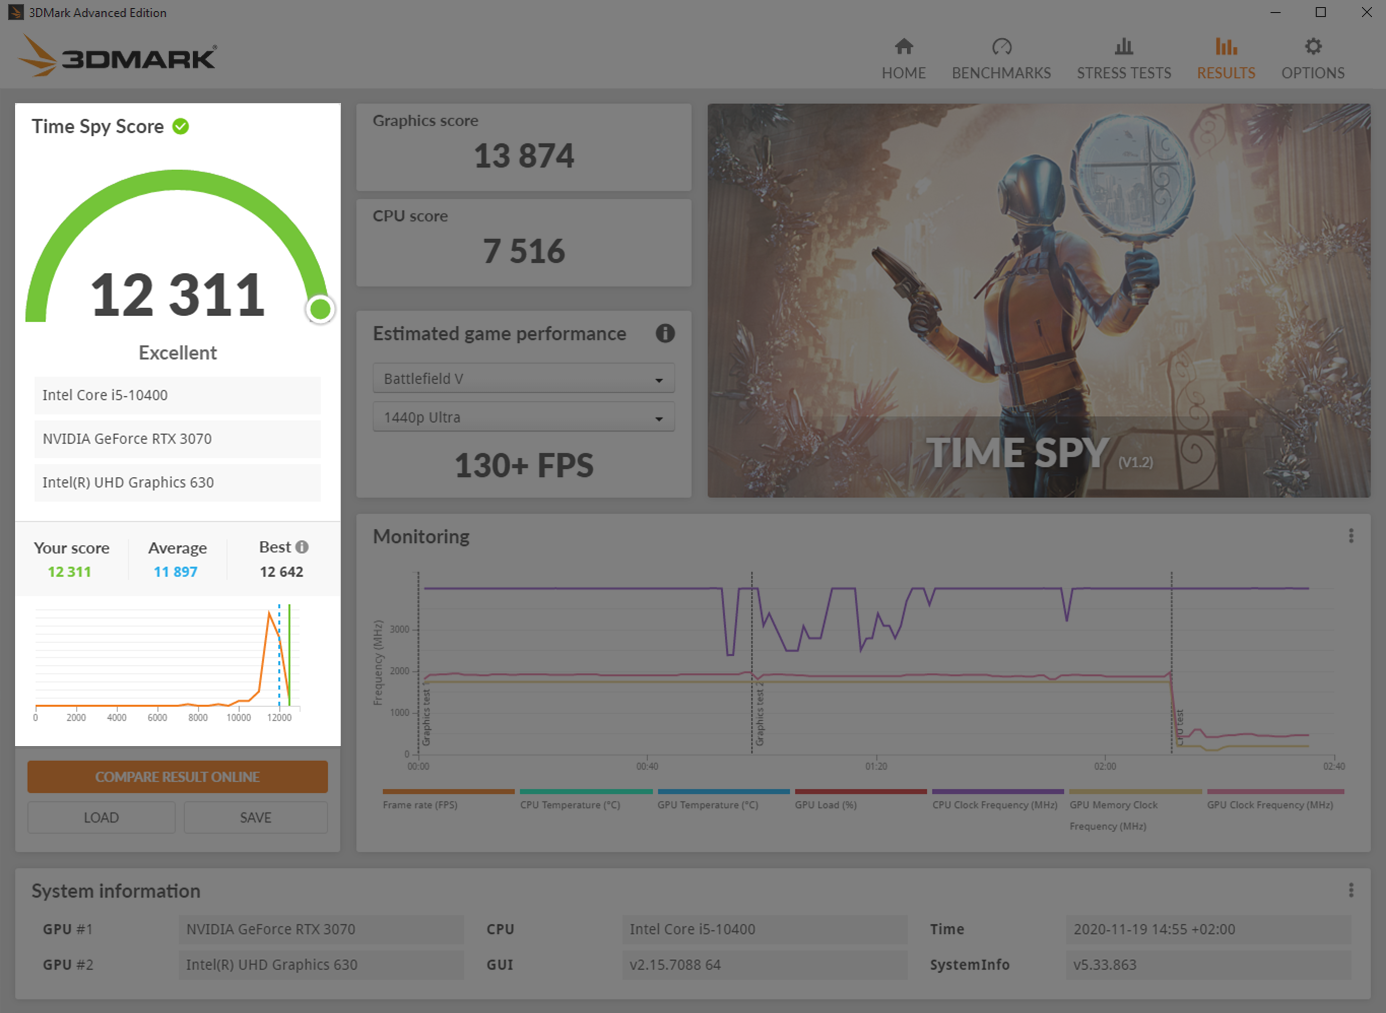 3DMark shows how your score compares with other results from the same hardware